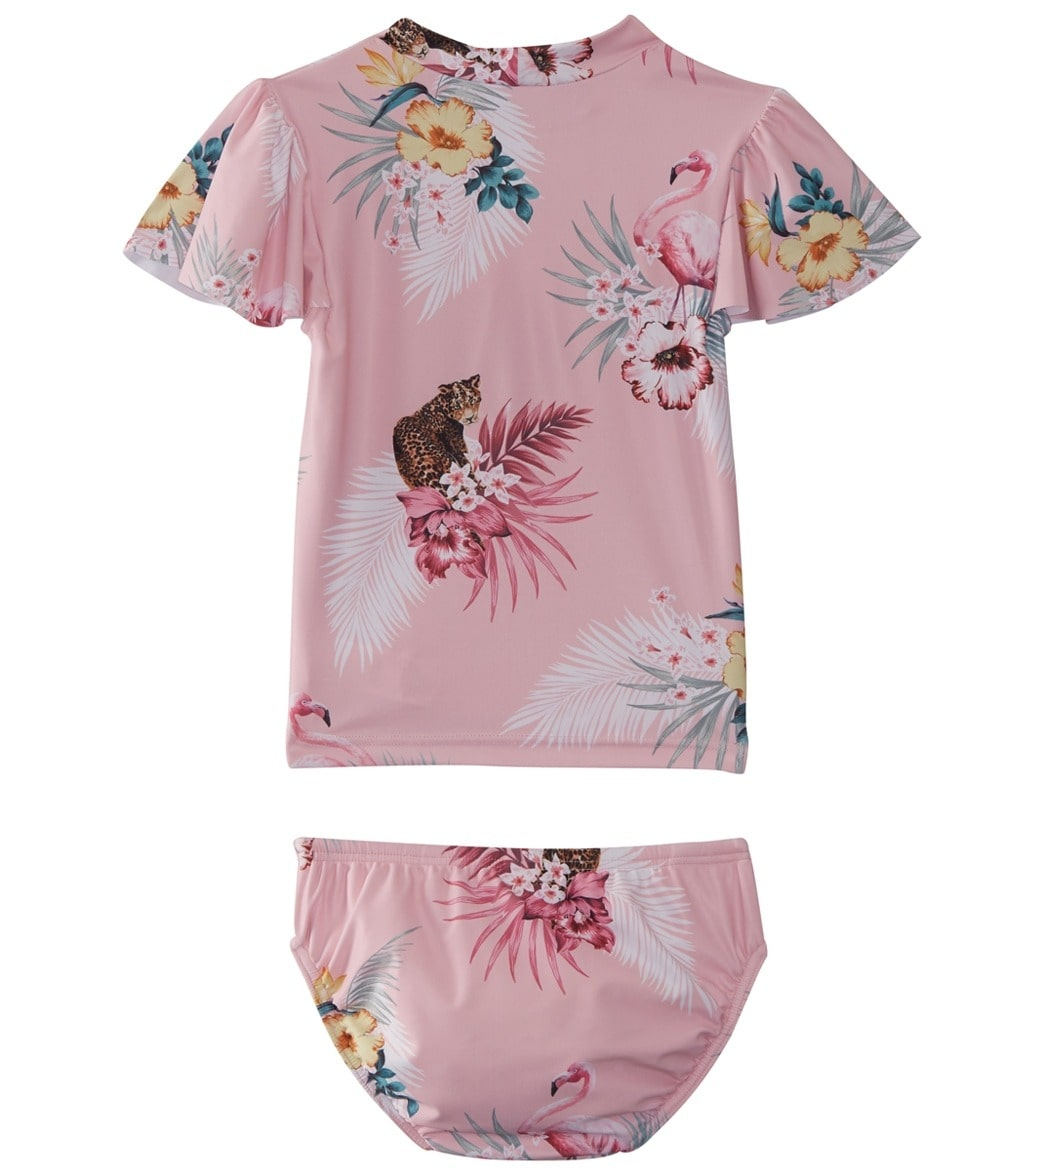 df0a5ca2c1 Seafolly Girls' Into the Wild Rashie Set (Baby, Toddler) at ...